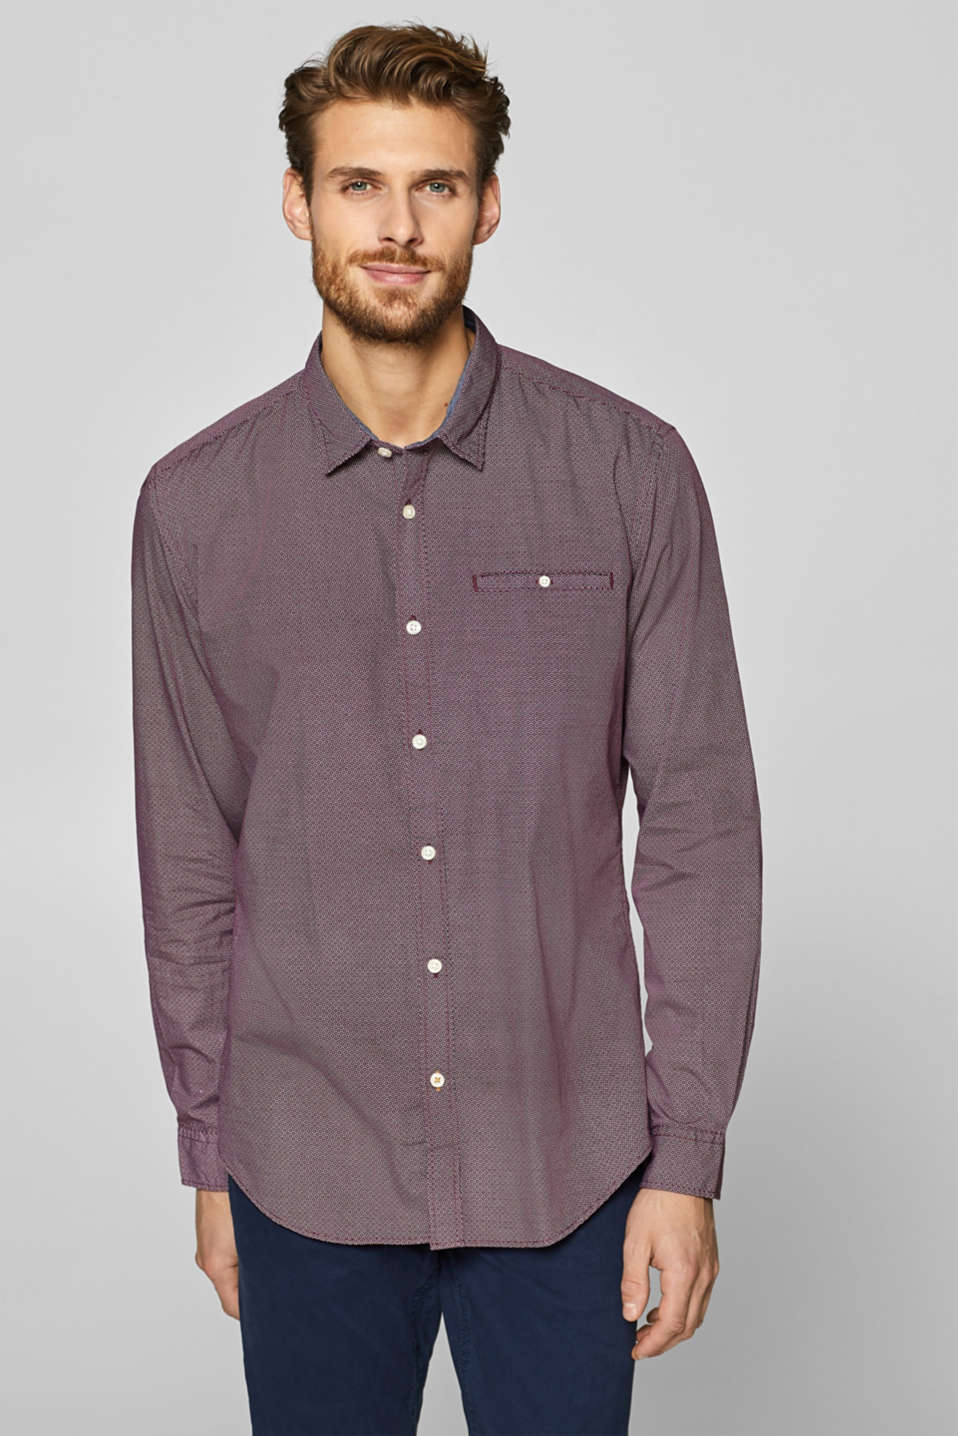 Esprit - All-over print shirt containing organic cotton